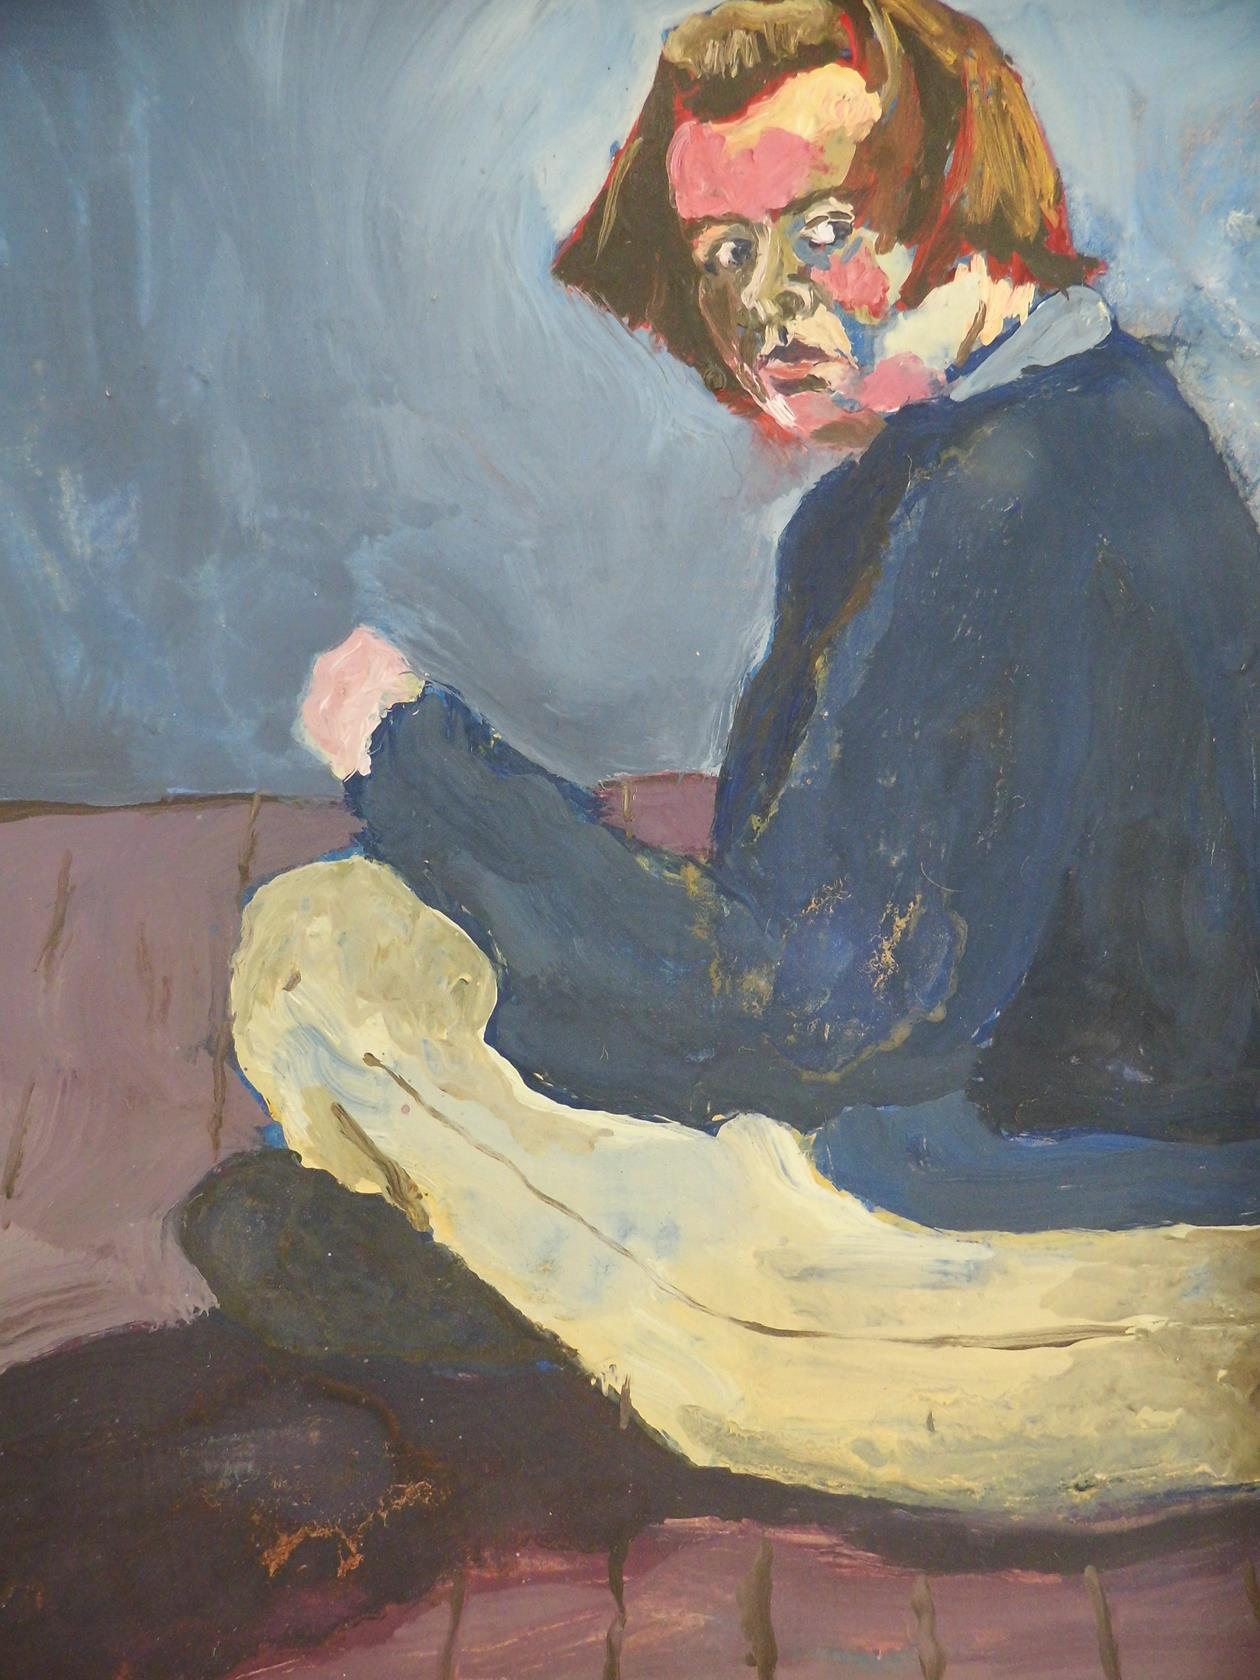 'I Won't Let You Get To Me' From the Cross Legged Series Oil on Board 1995